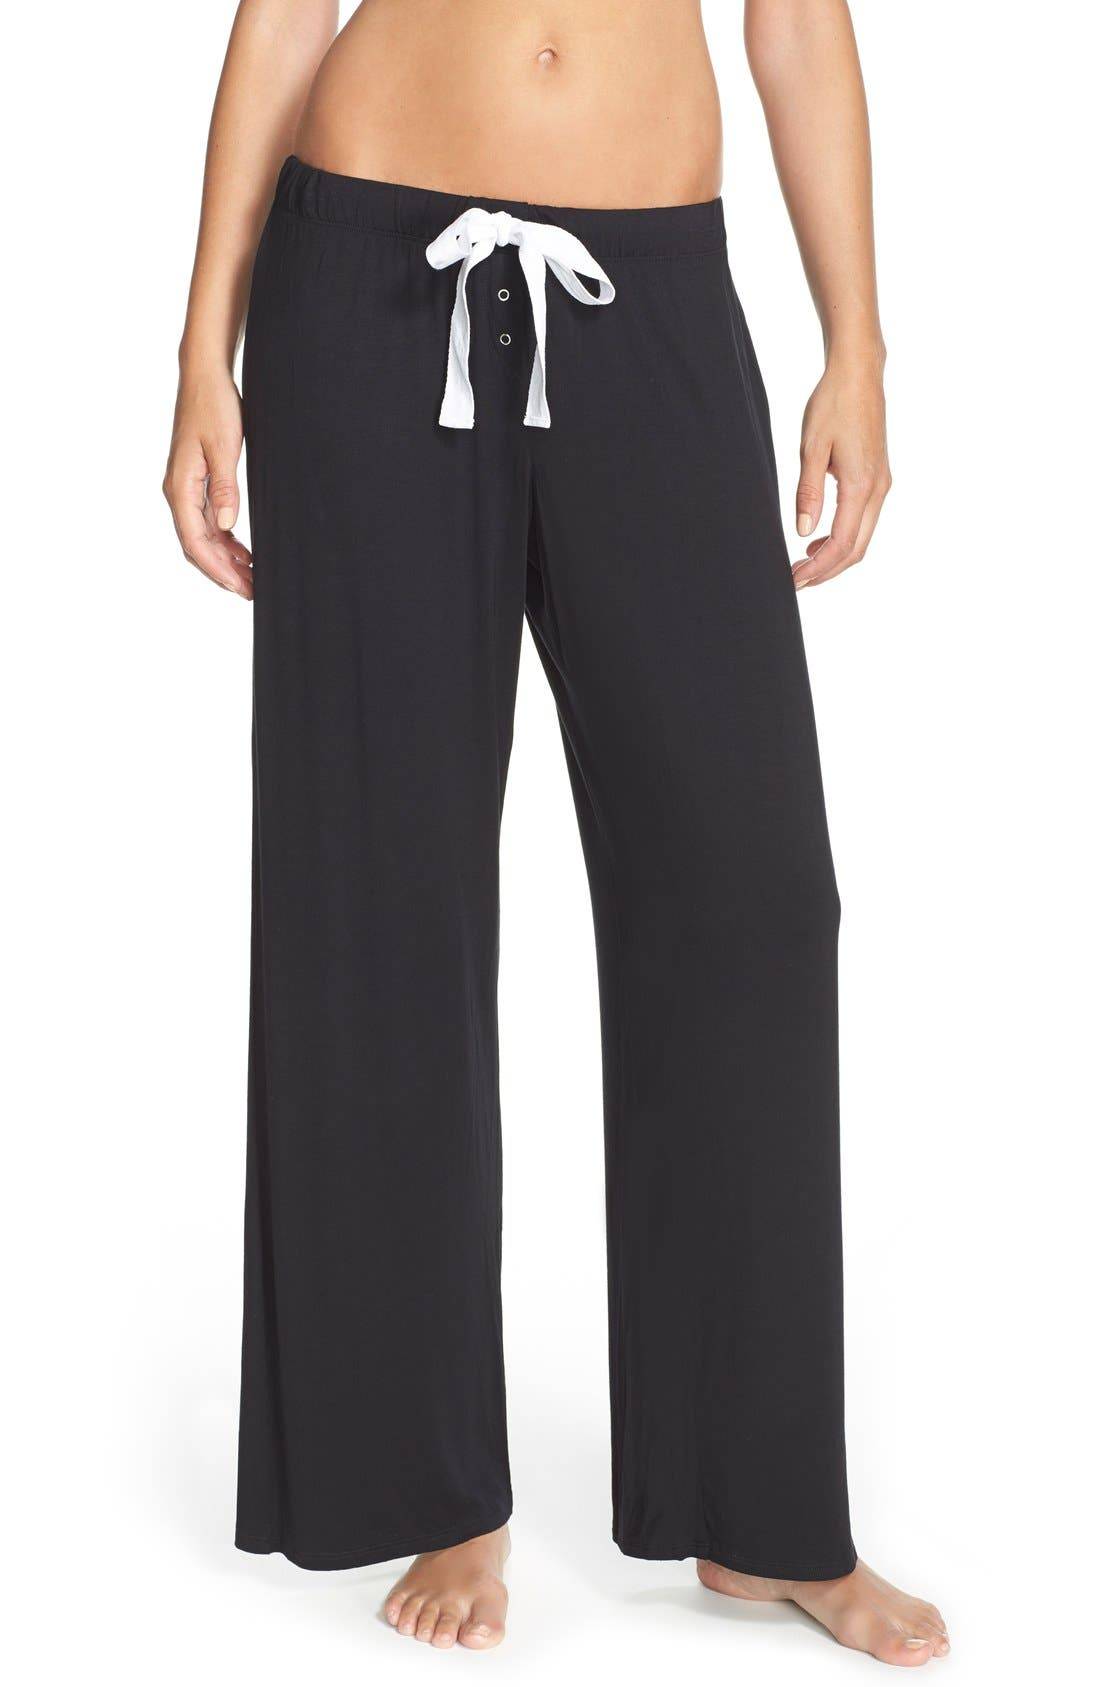 Main Image - Fleur't With Me Stretch Lounge Pants